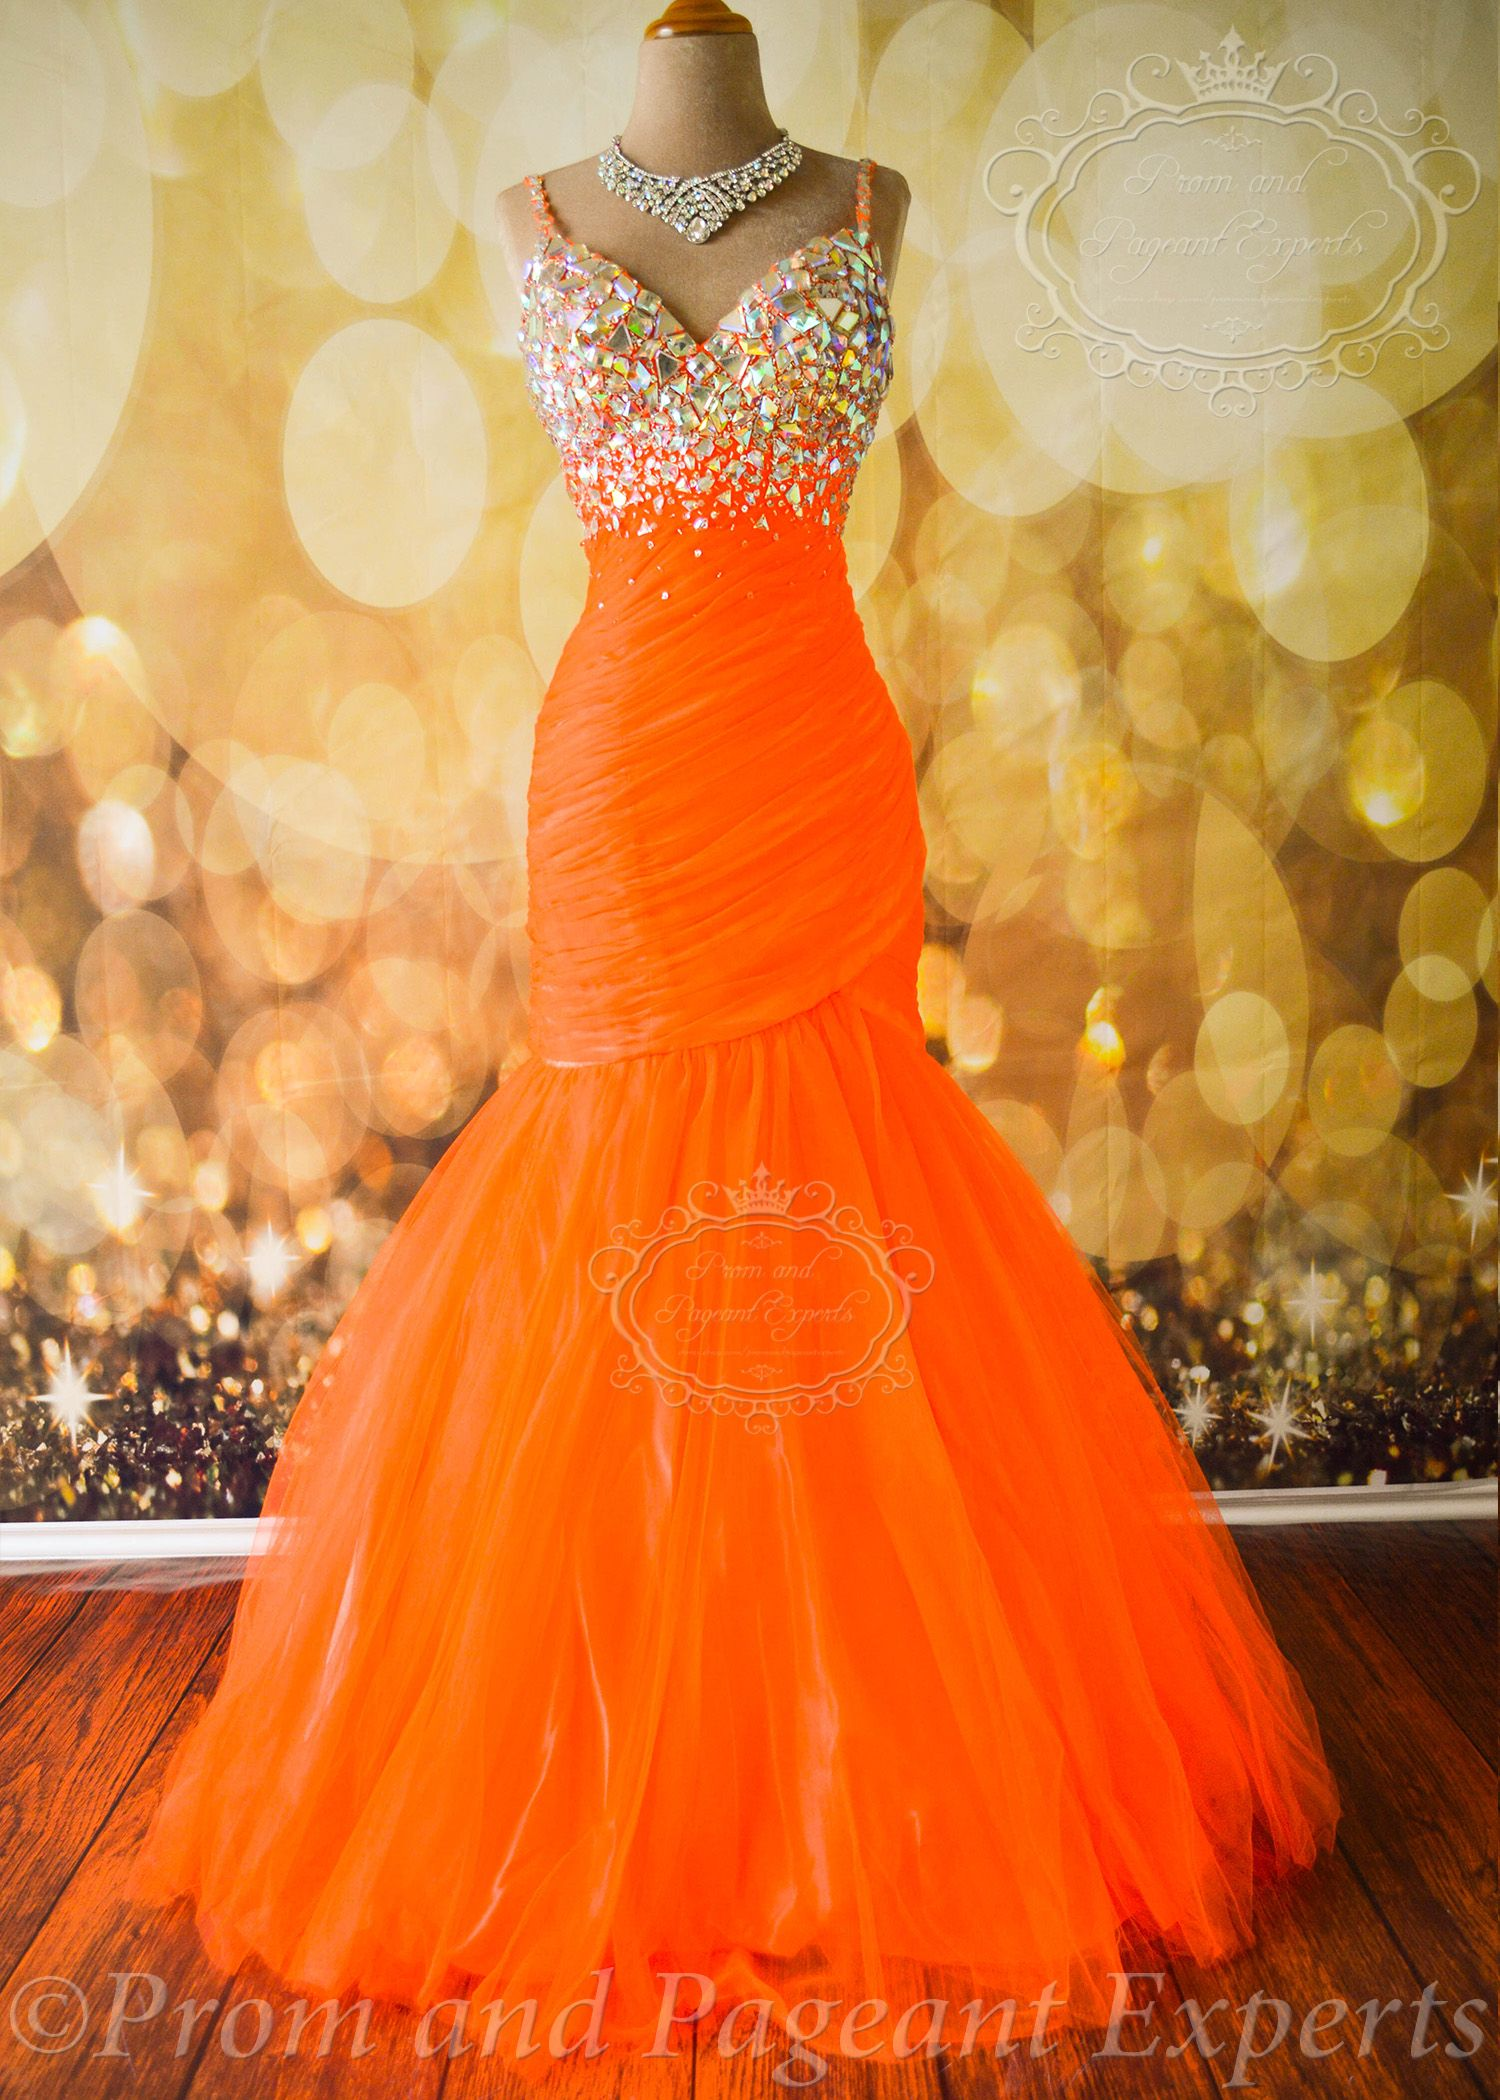 Neon Orange Mac Duggal From Prom And Pageant Experts In 2019 Prom